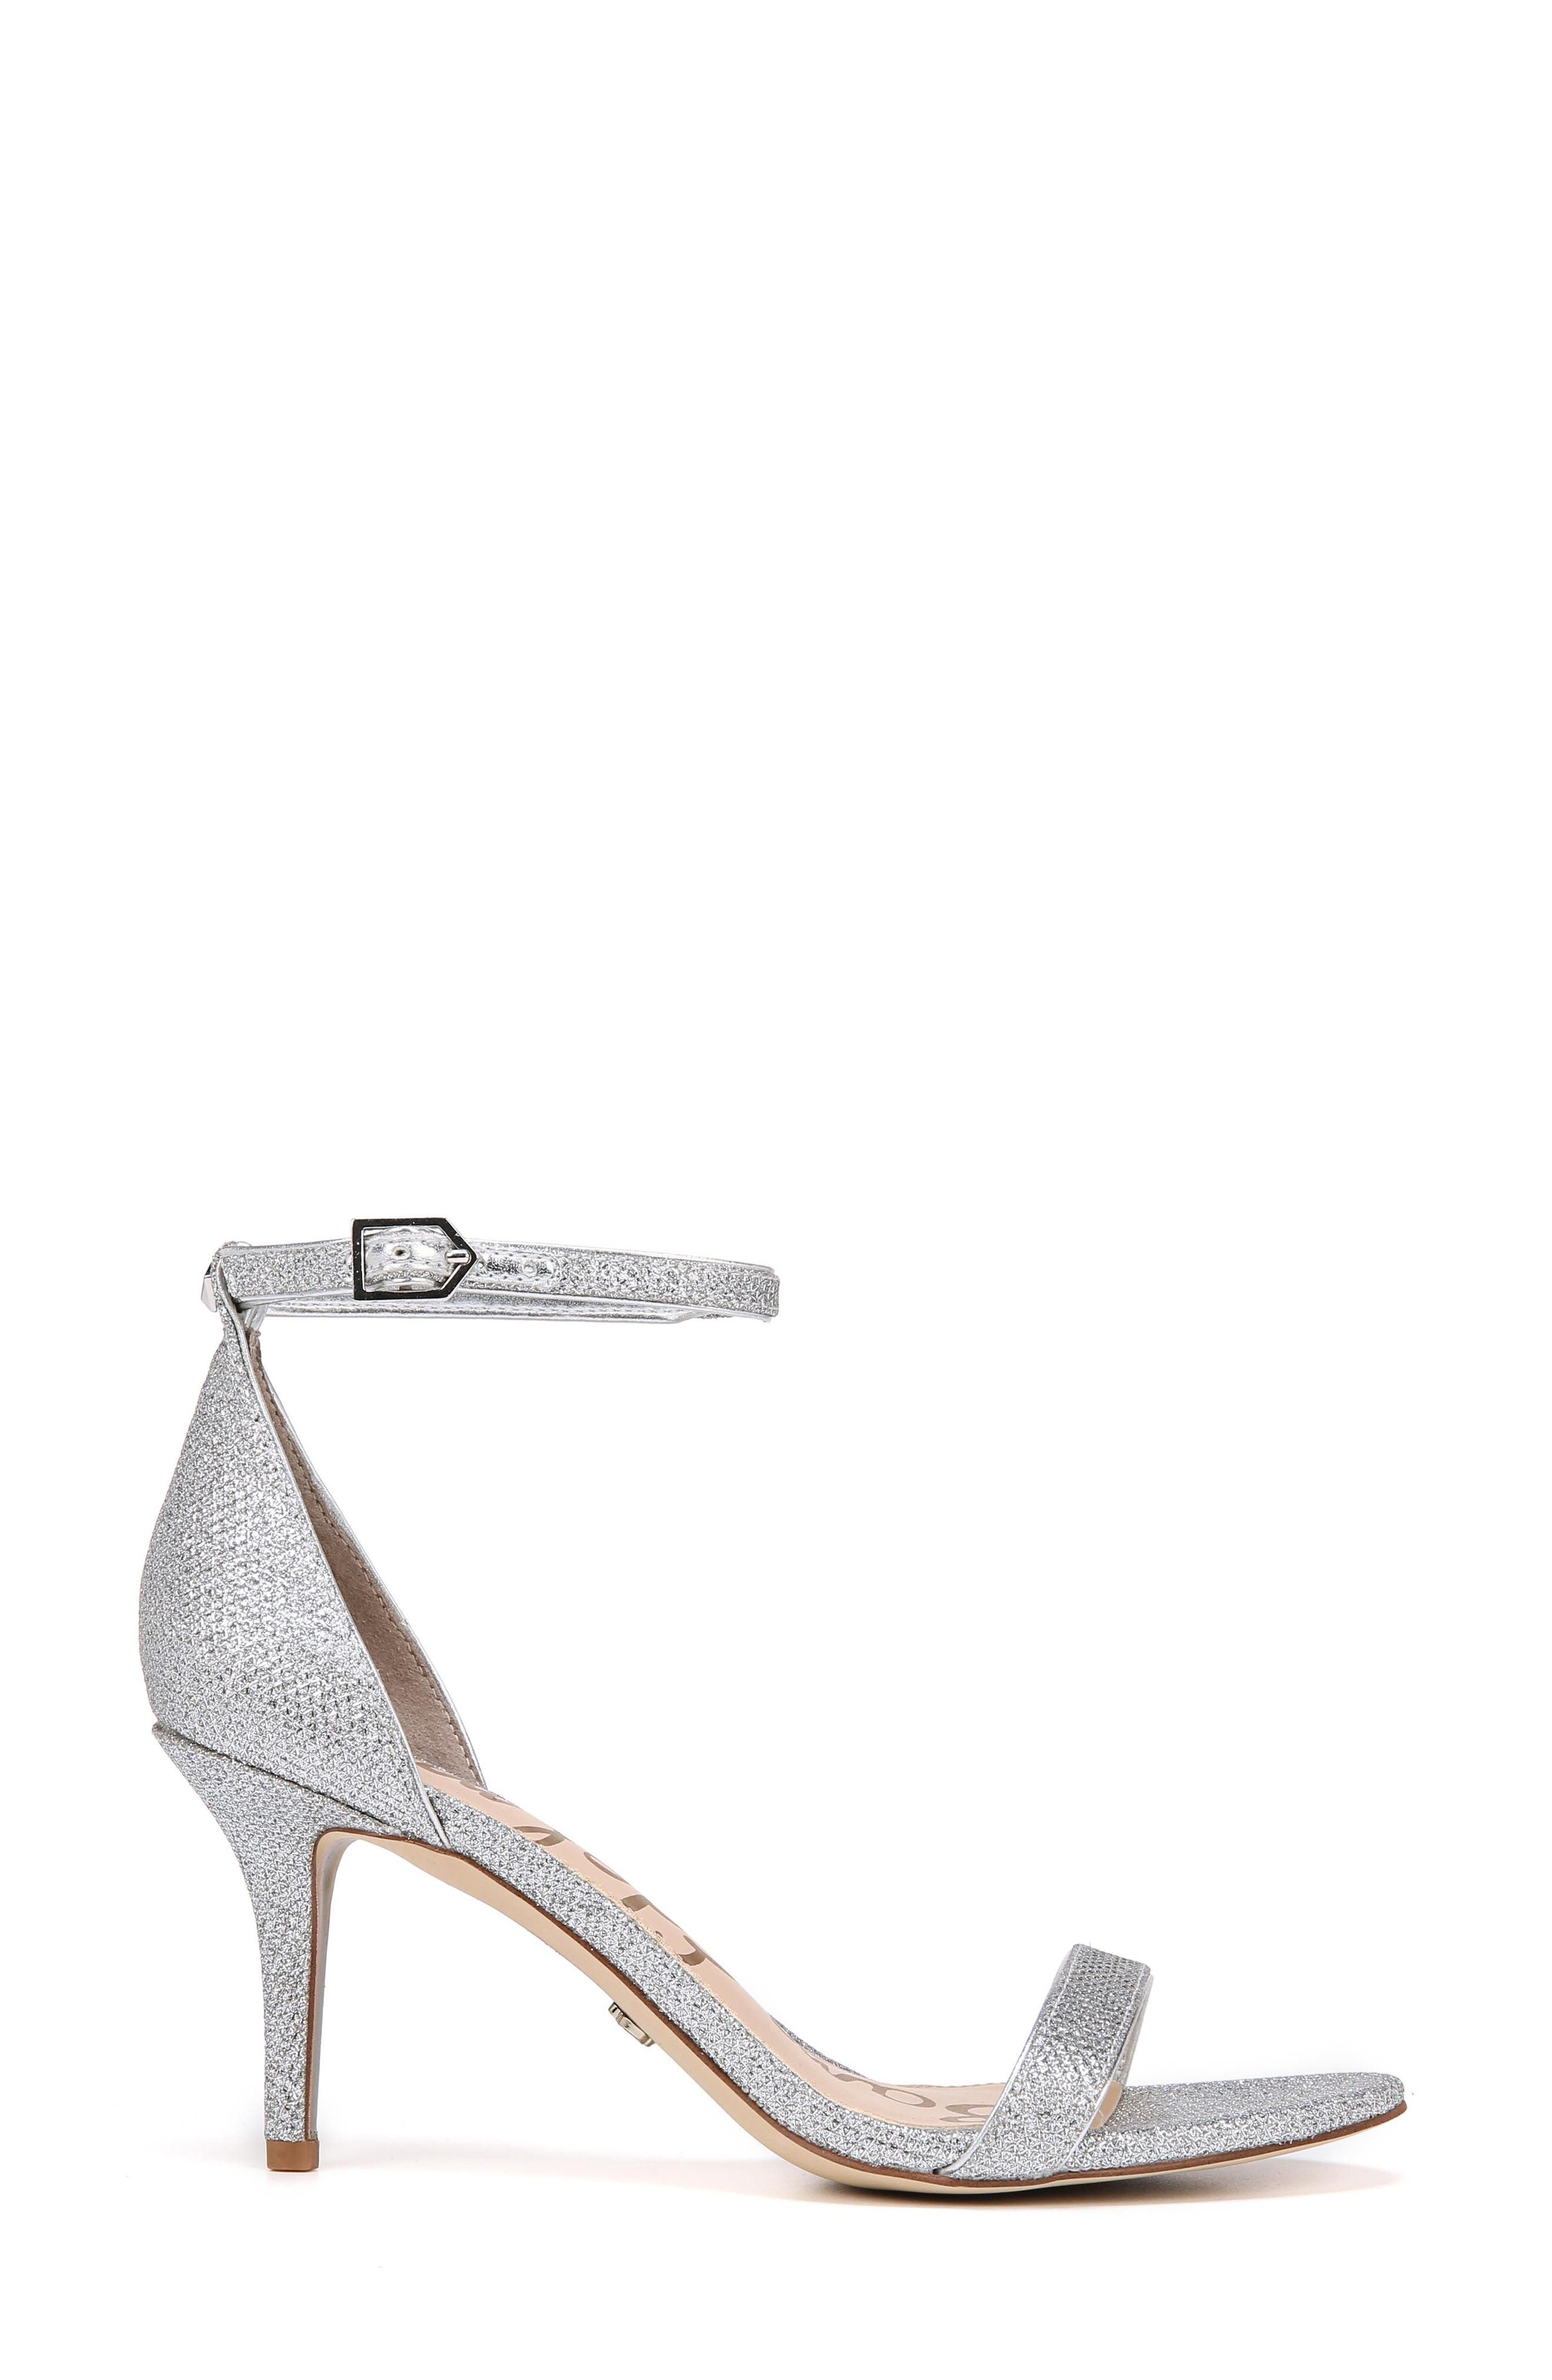 'Patti' Ankle Strap Sandal,                             Alternate thumbnail 3, color,                             SOFT SILVER FABRIC